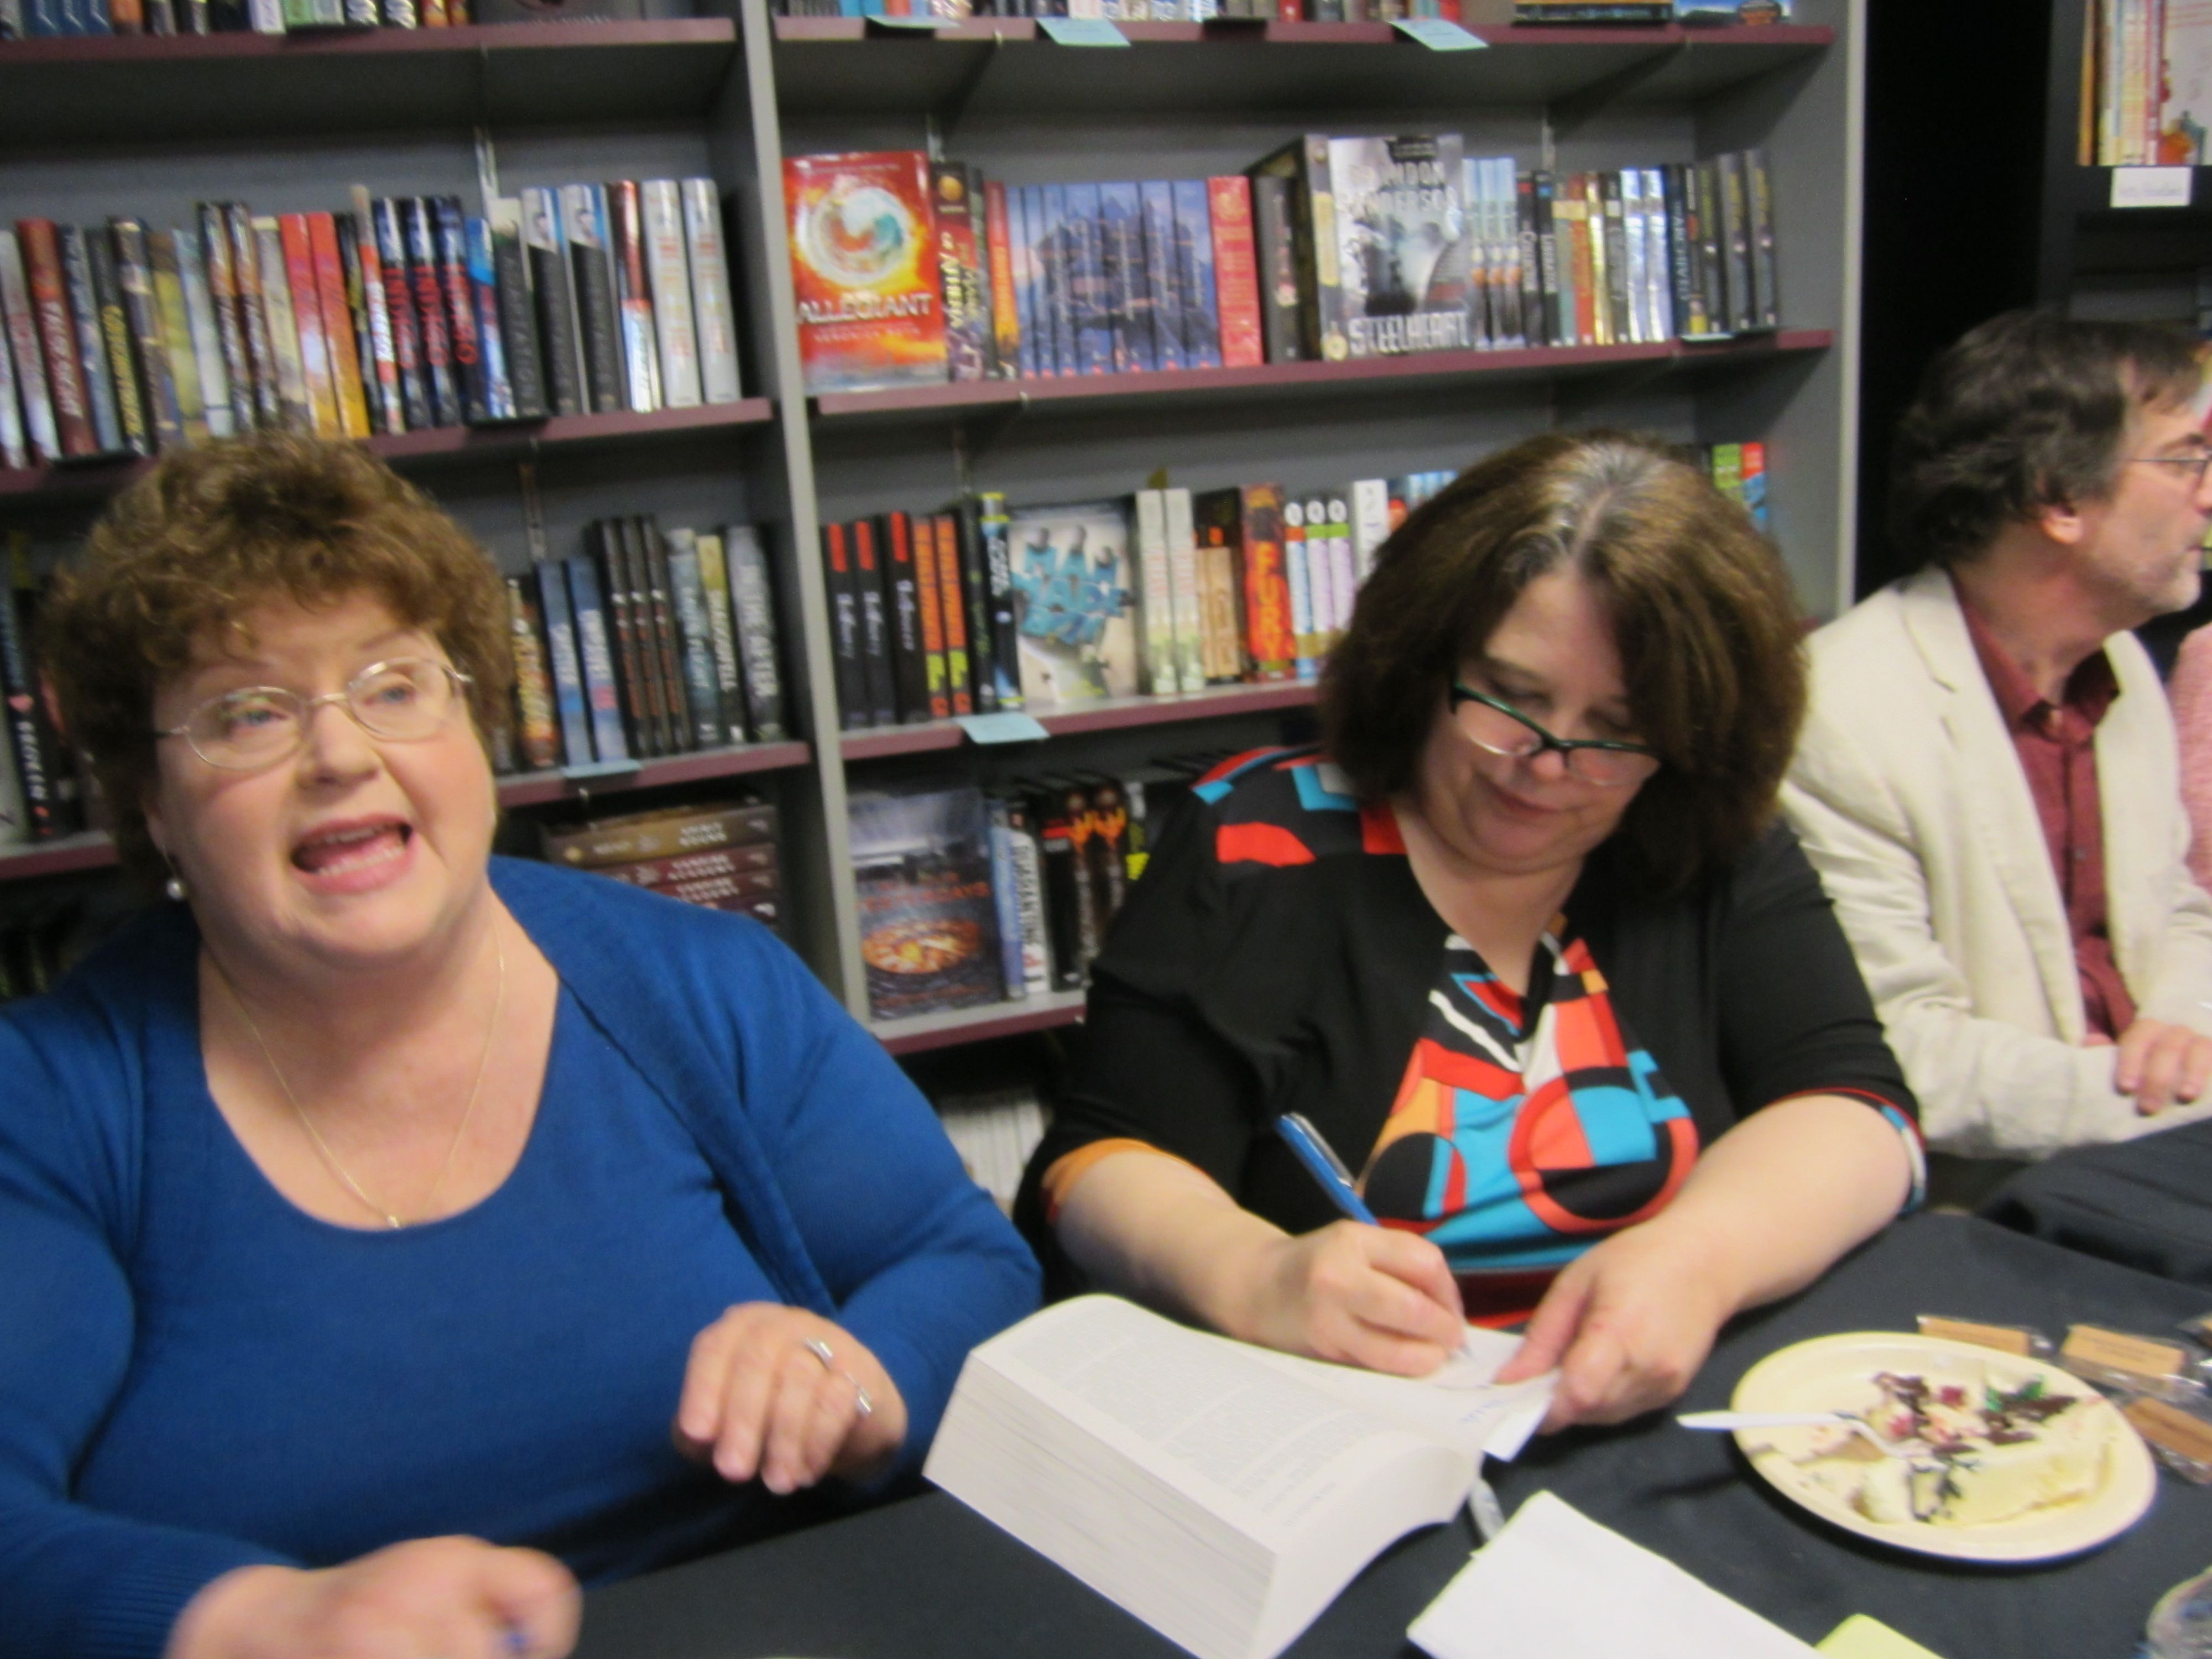 Author event at Mysterious Galaxy event.